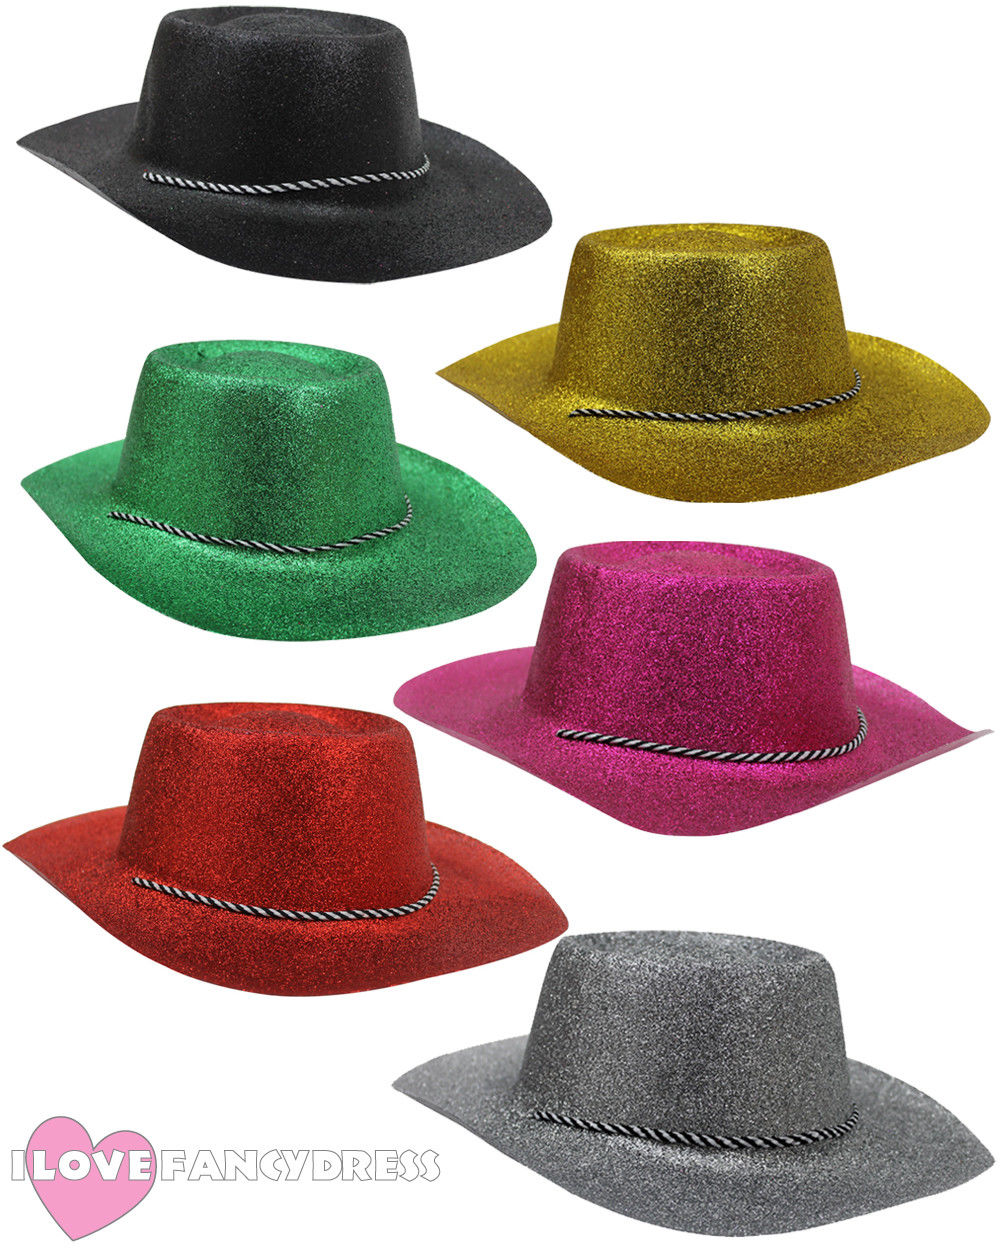 GLITTER COWBOY HAT WILD WESTERN COWGIRL SHINE BLING BLING HEN STAG NIGHT FANCY DRESS PARTY HOLIDAY CHOOSE COLOUR FAST SHIPPING